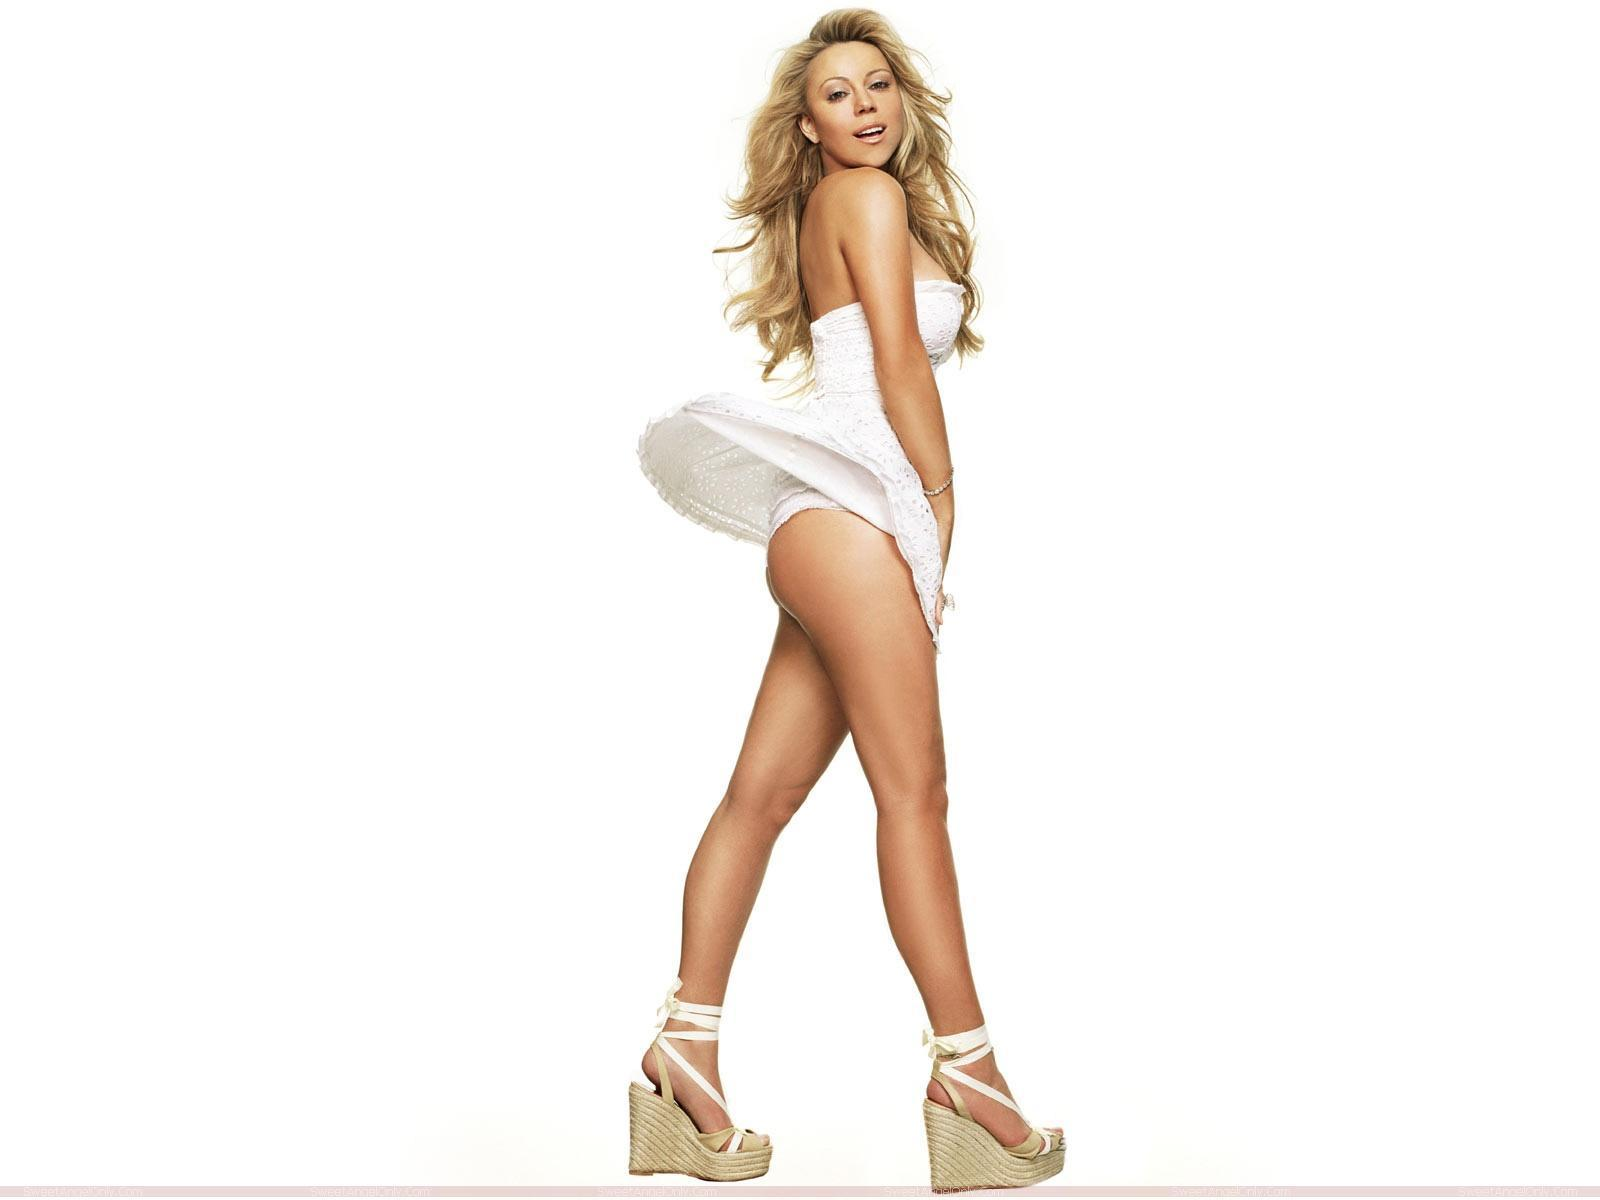 http://4.bp.blogspot.com/-IEm99wX8SHA/TY3pLZUTRbI/AAAAAAAAF_k/-07xQKvcqog/s1600/mariah_carey_hollywood_hot_actress_wallpaper_sweetangelonly_19.jpg